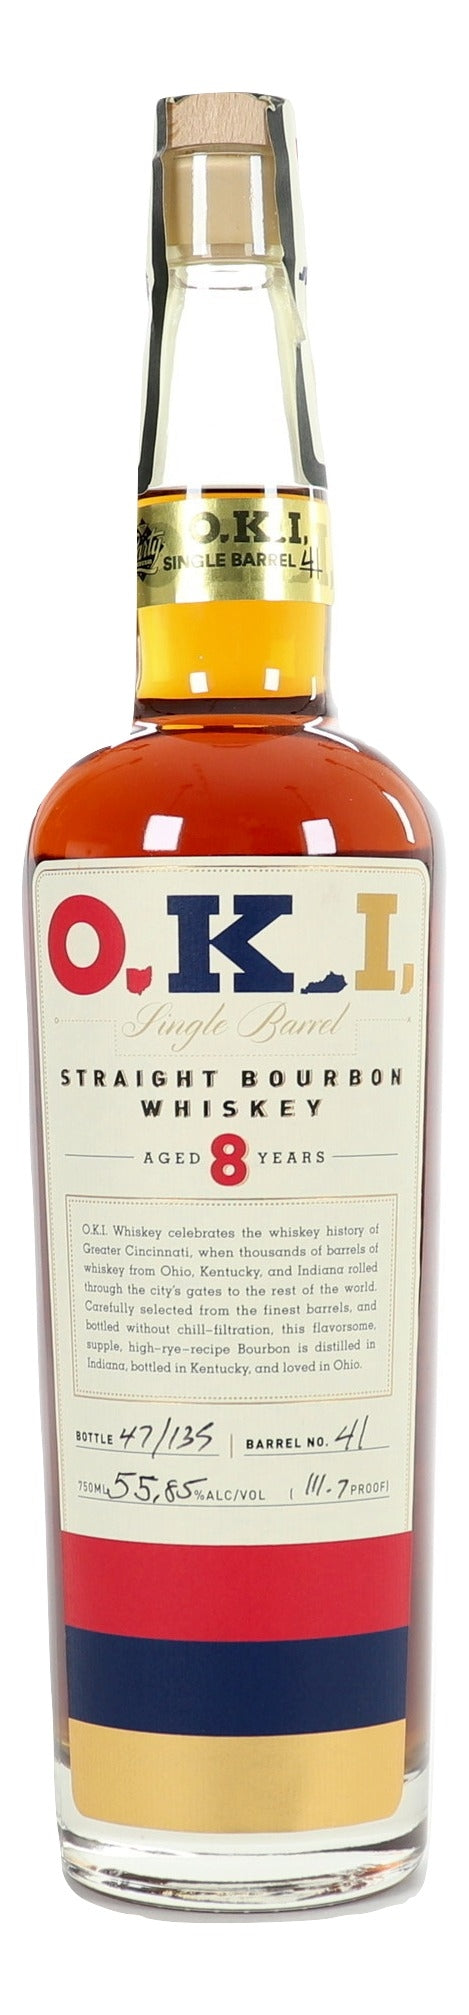 O.K.I. 8 Year Old Straight Bourbon Whiskey Single Barrel For Sale - NativeSpiritsOnline